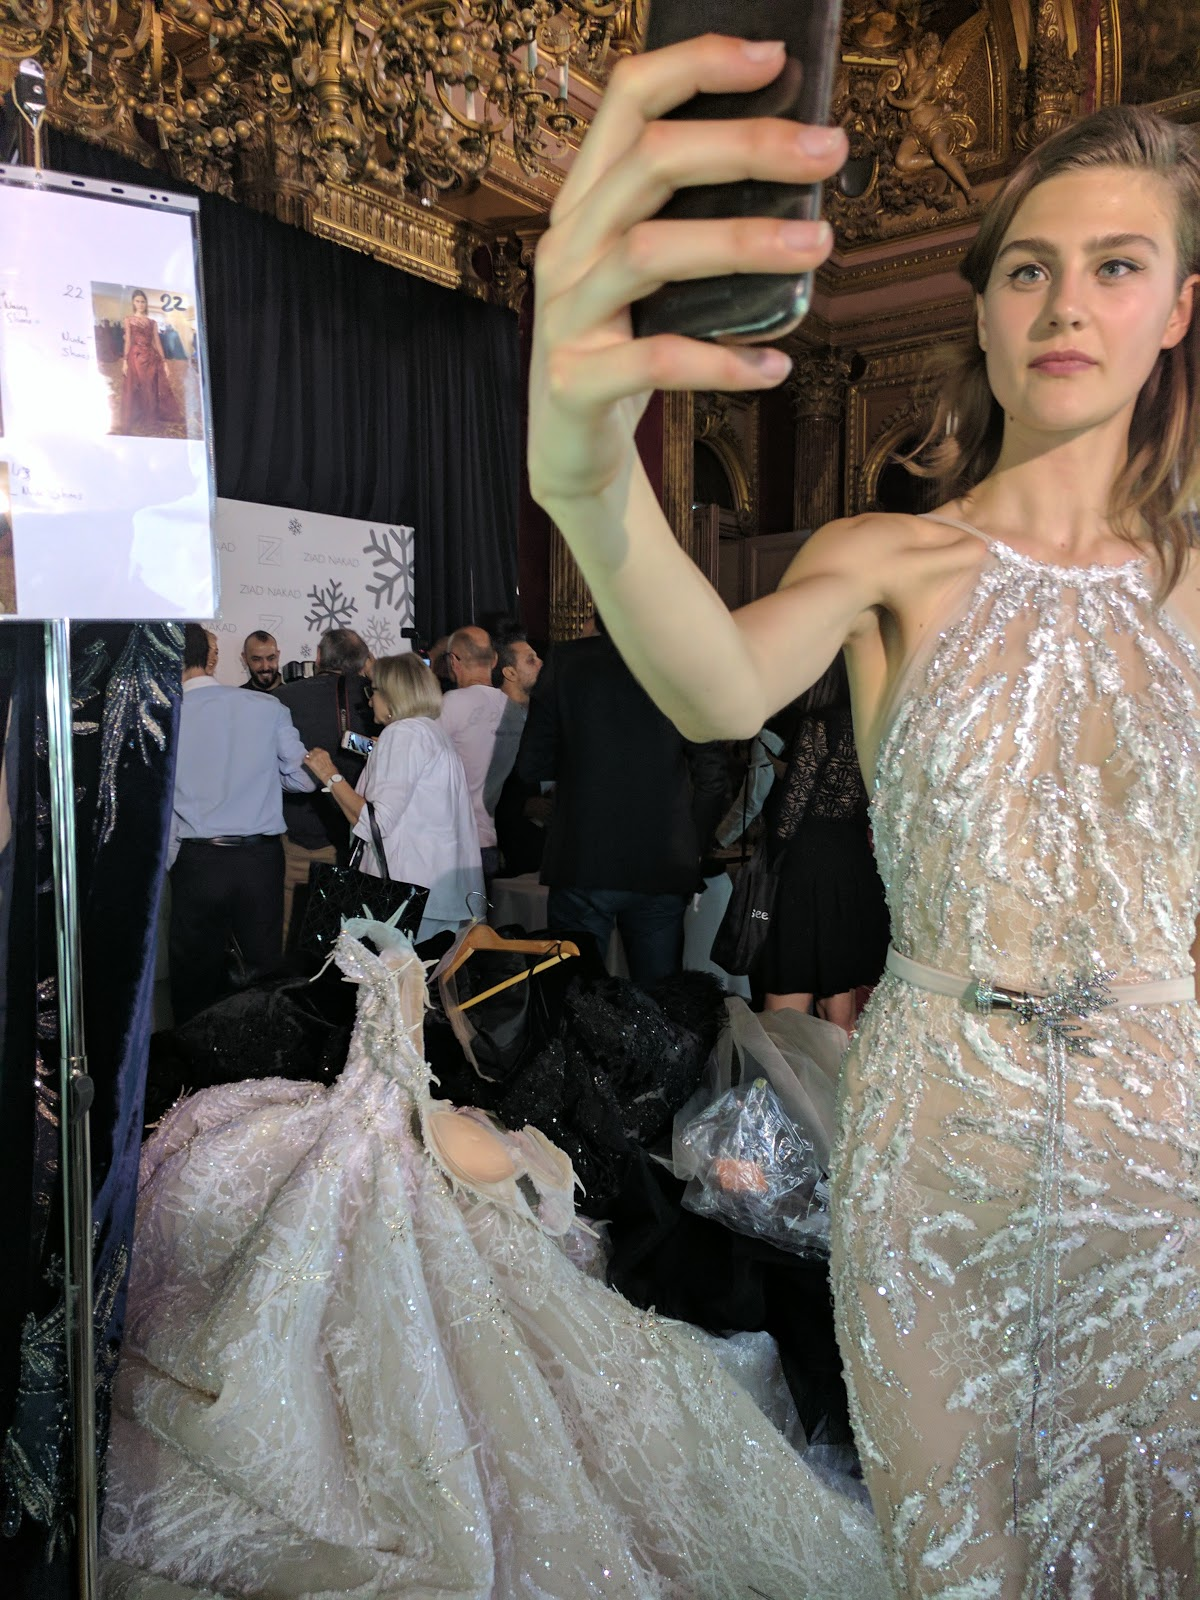 Garment Bags For Wedding Dresses 69 Cool In the course of